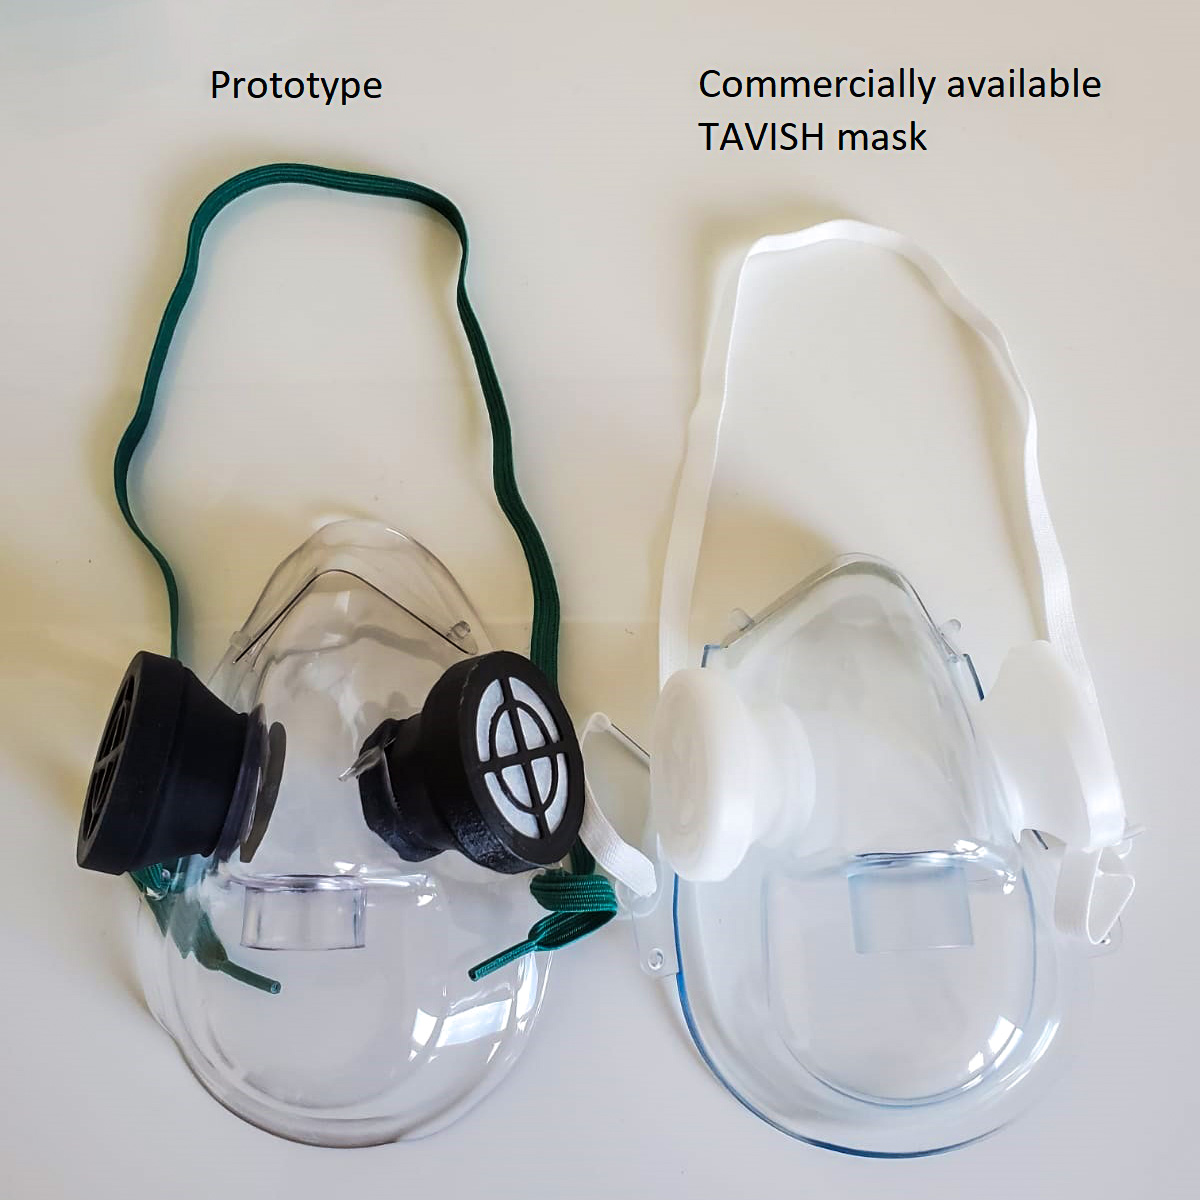 Prototype TAVISH mask beside a commercially available one